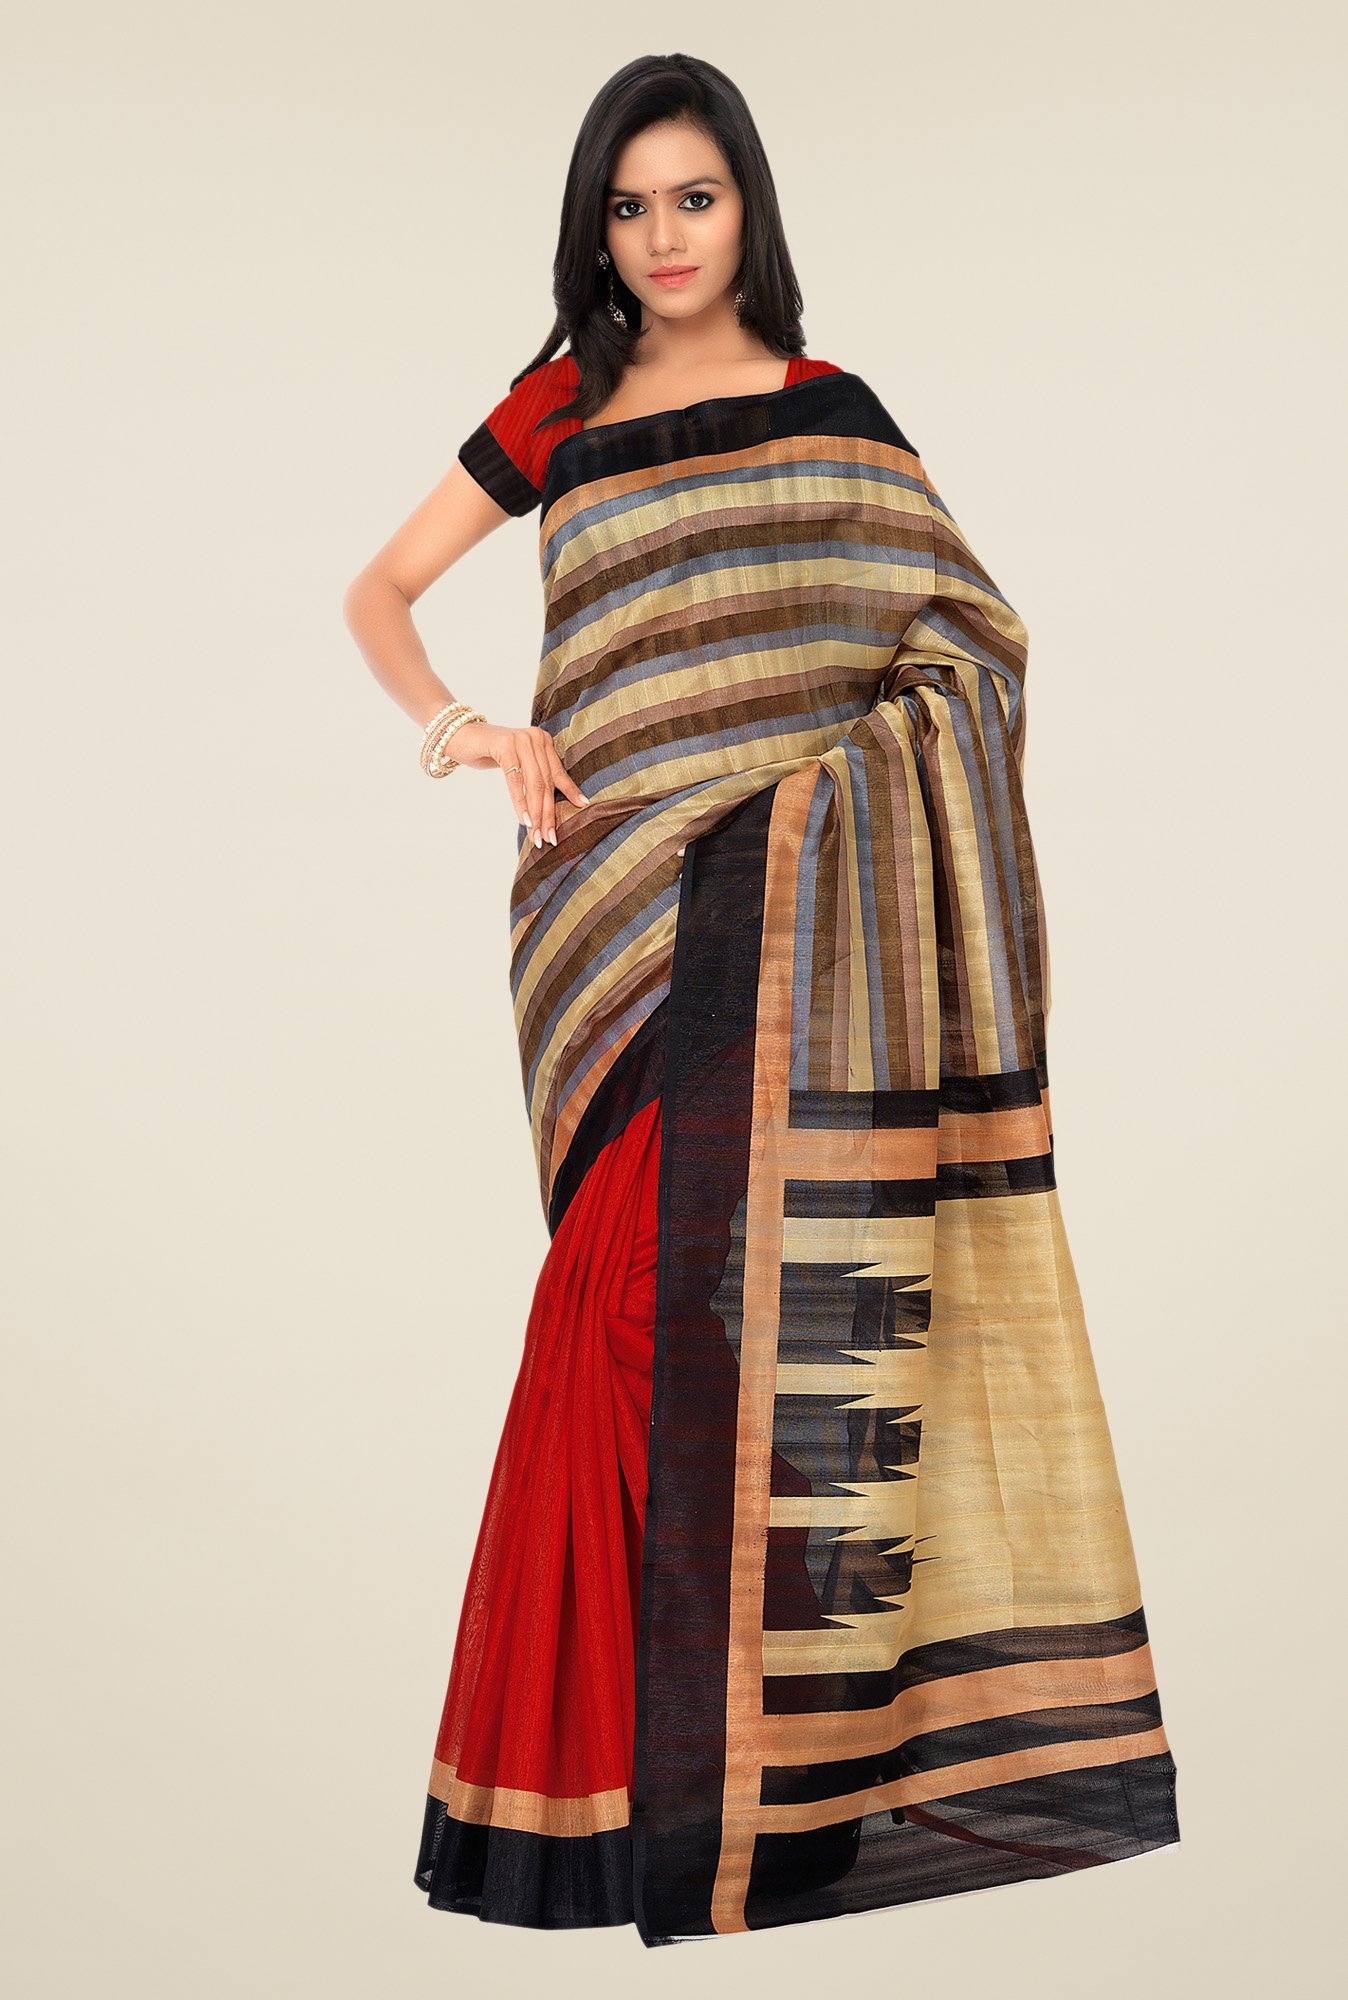 Shonaya Beige & Red Bhagalpuri Silk Striped Saree